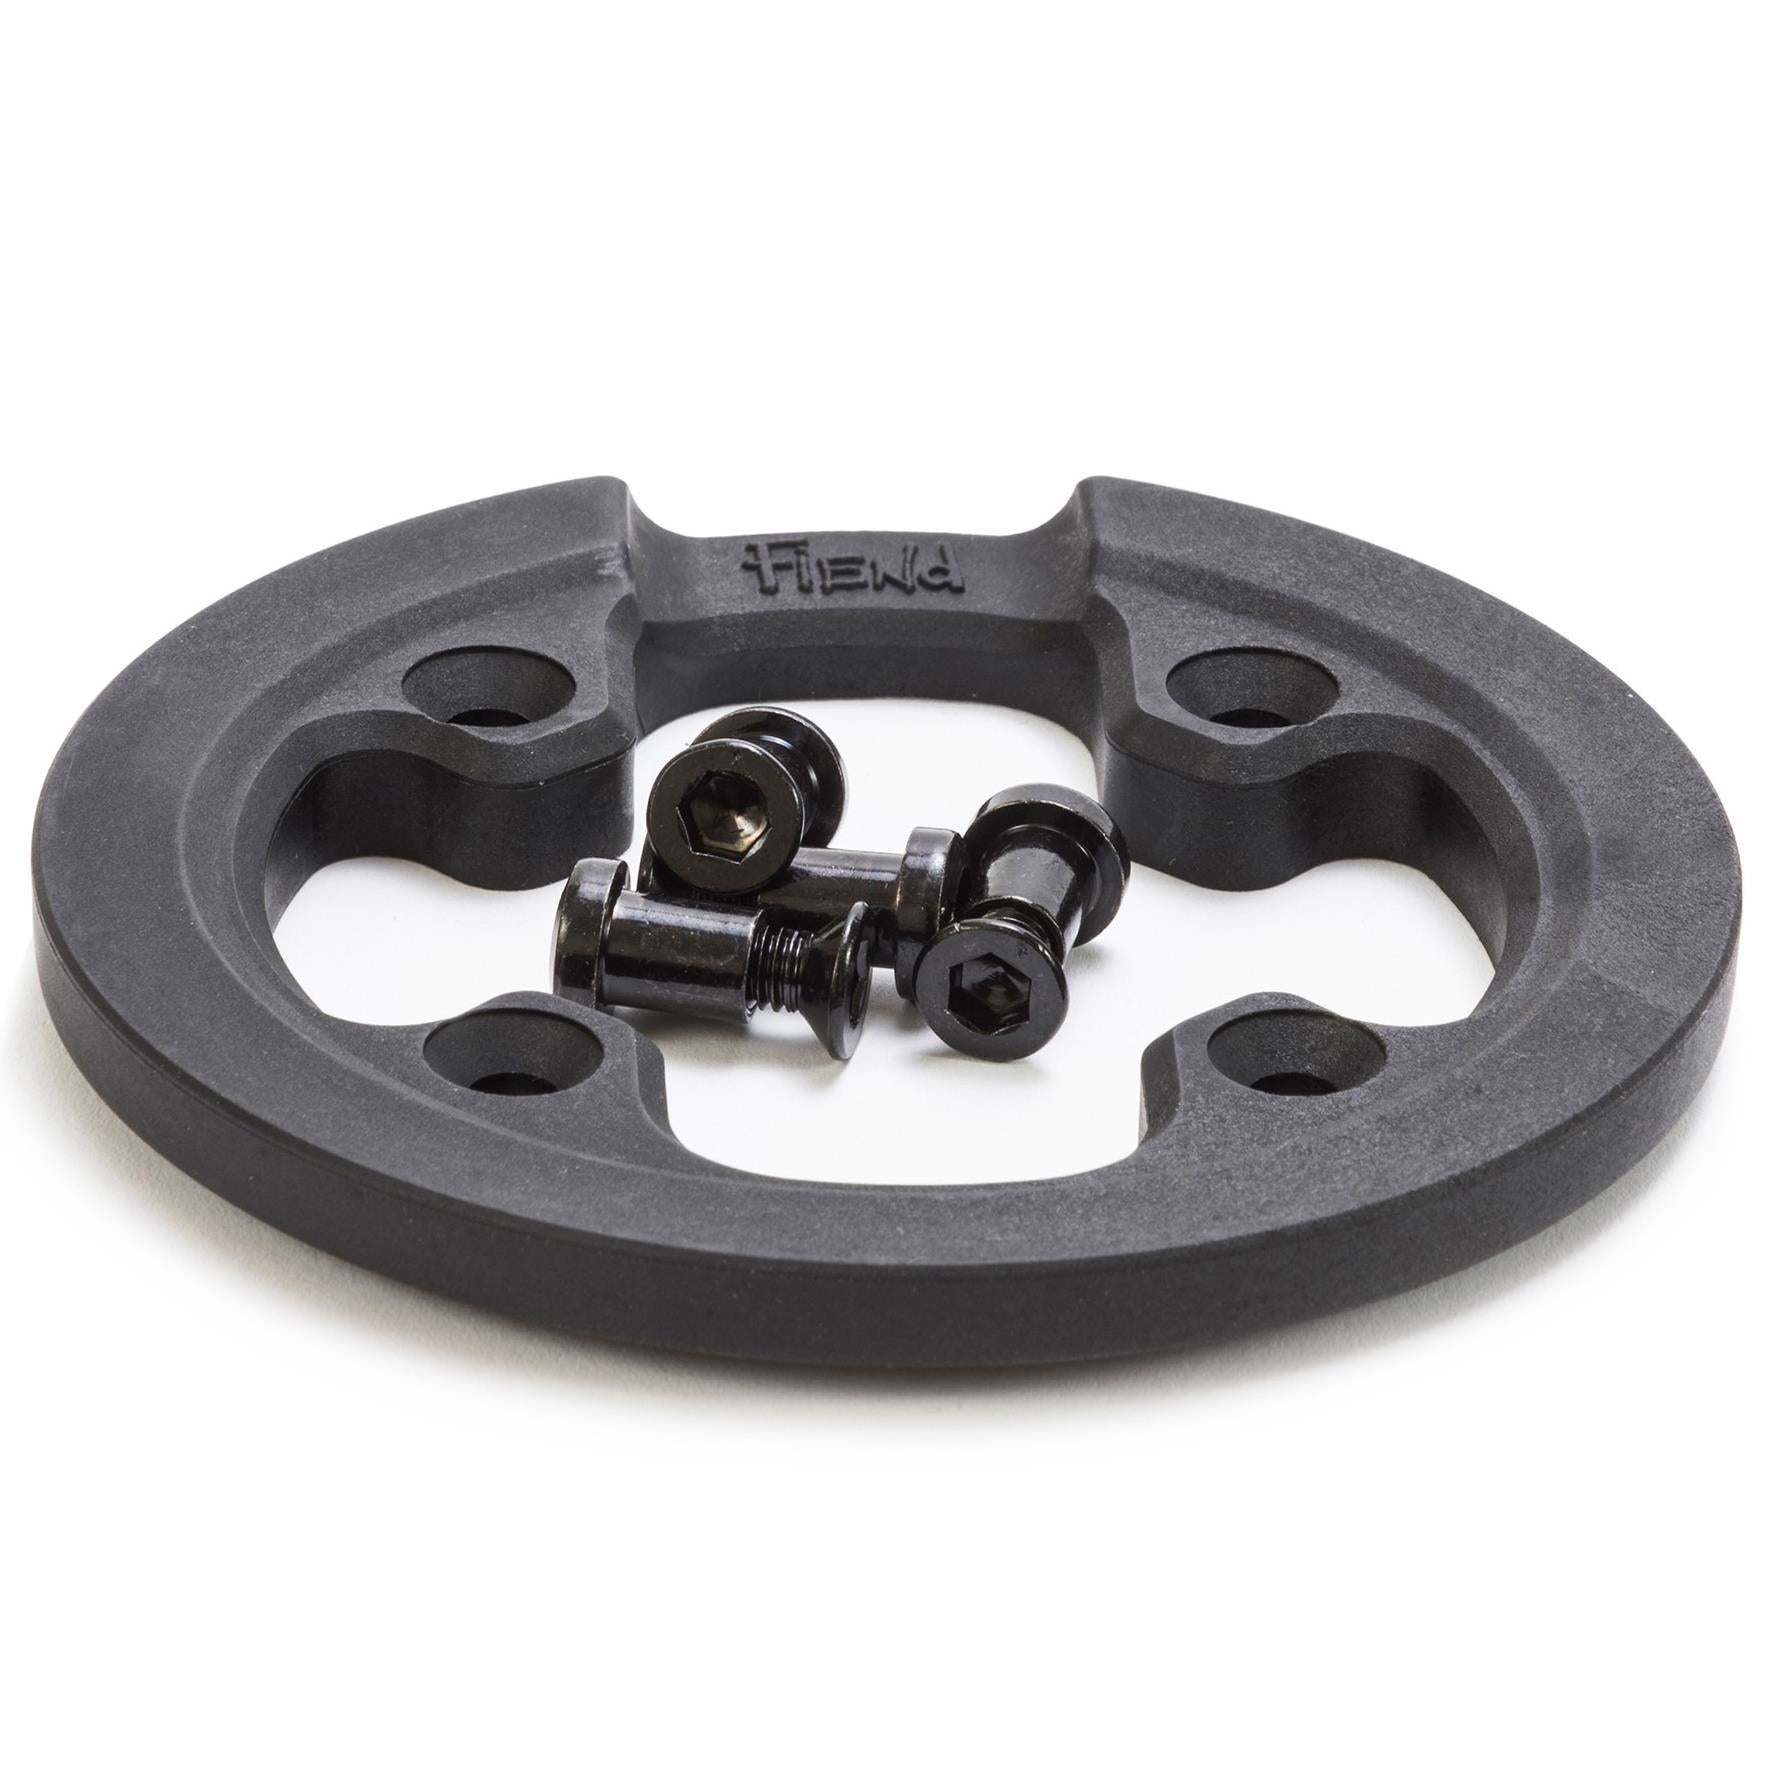 Fiend Havoc Replacement Sprocket Guard